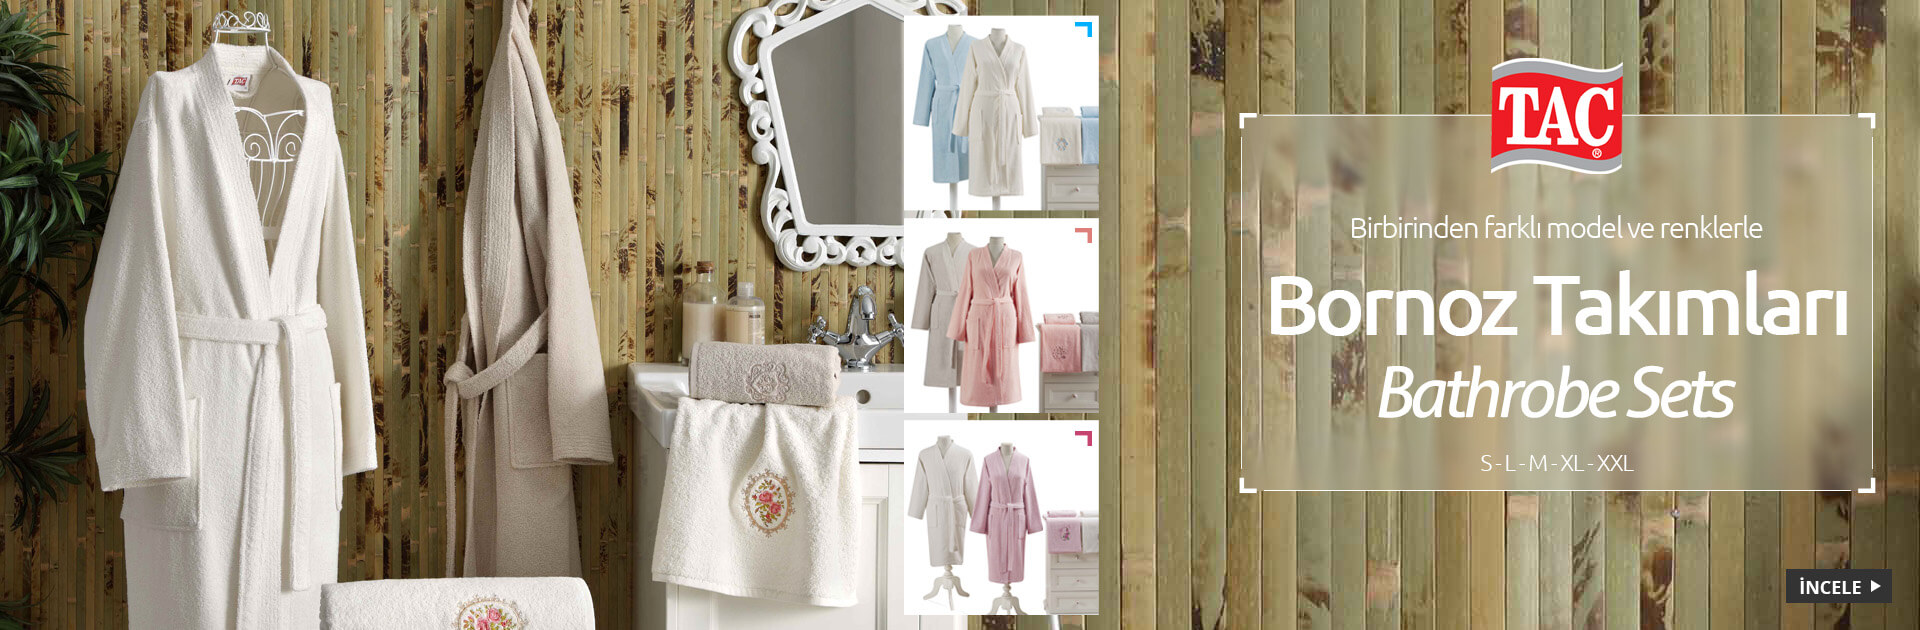 Bornoz Setleri Bathrobe Set